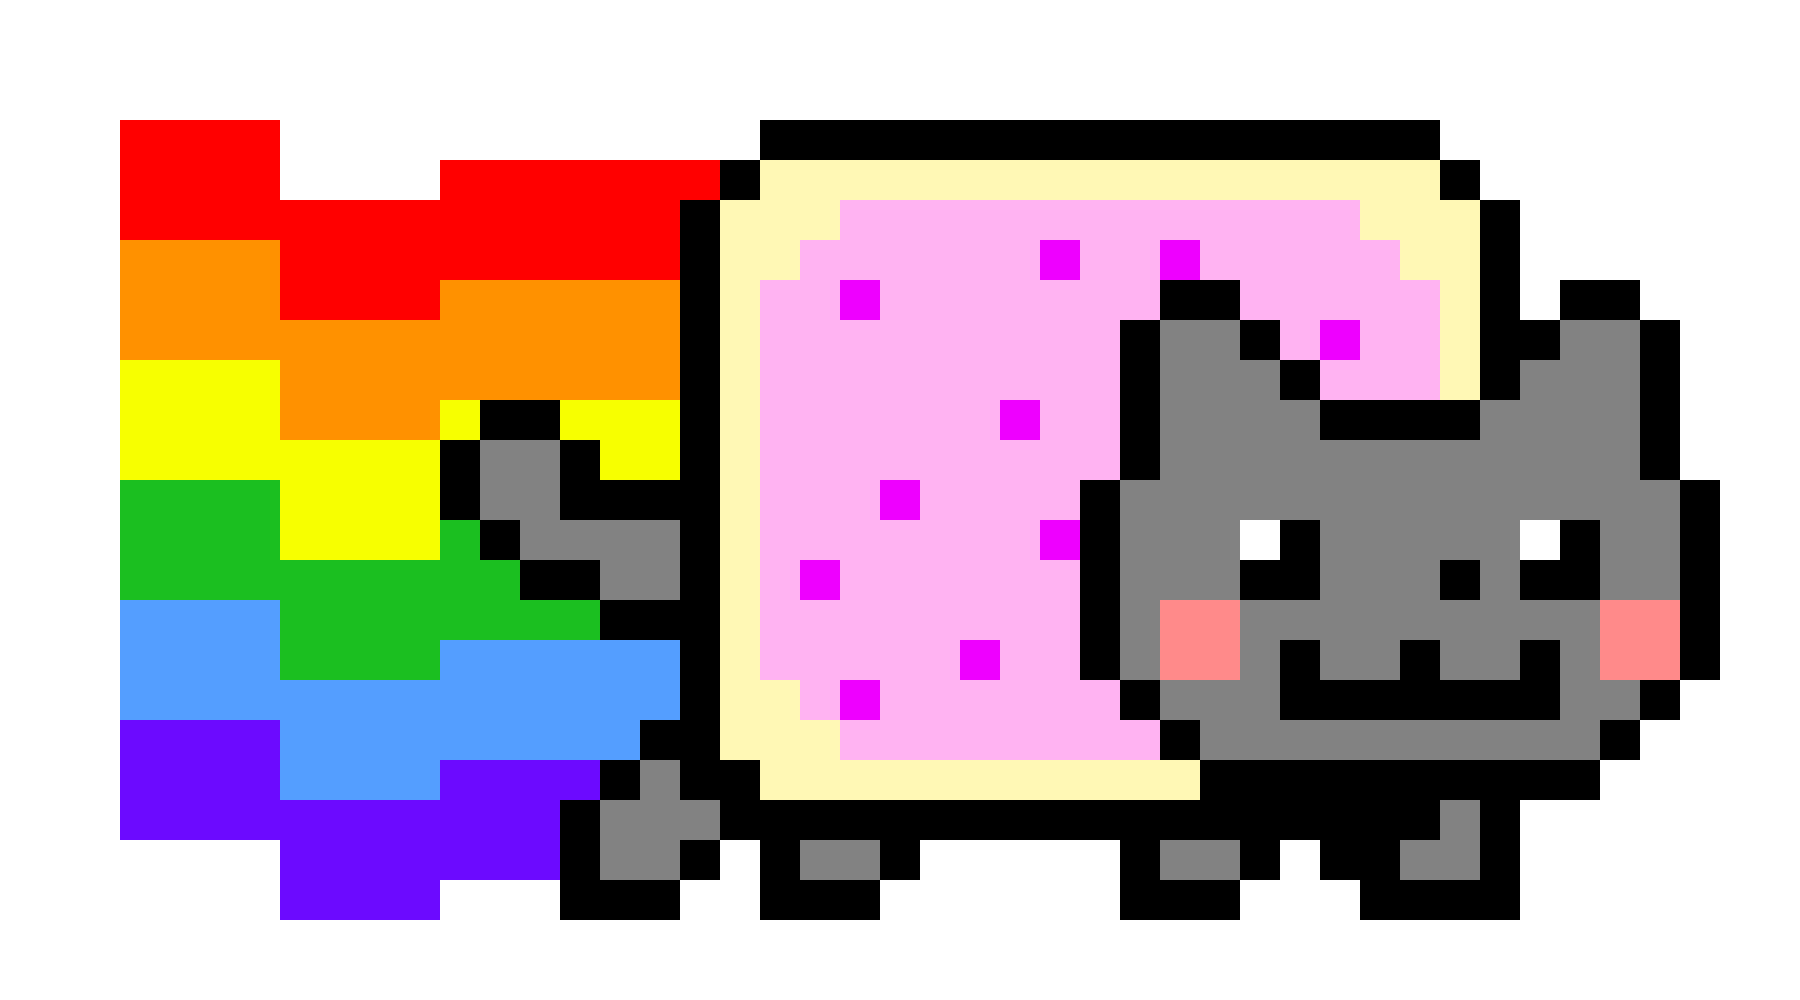 Rainbow cat clipart clip art freeuse 28+ Collection of Nyan Cat Clipart | High quality, free cliparts ... clip art freeuse